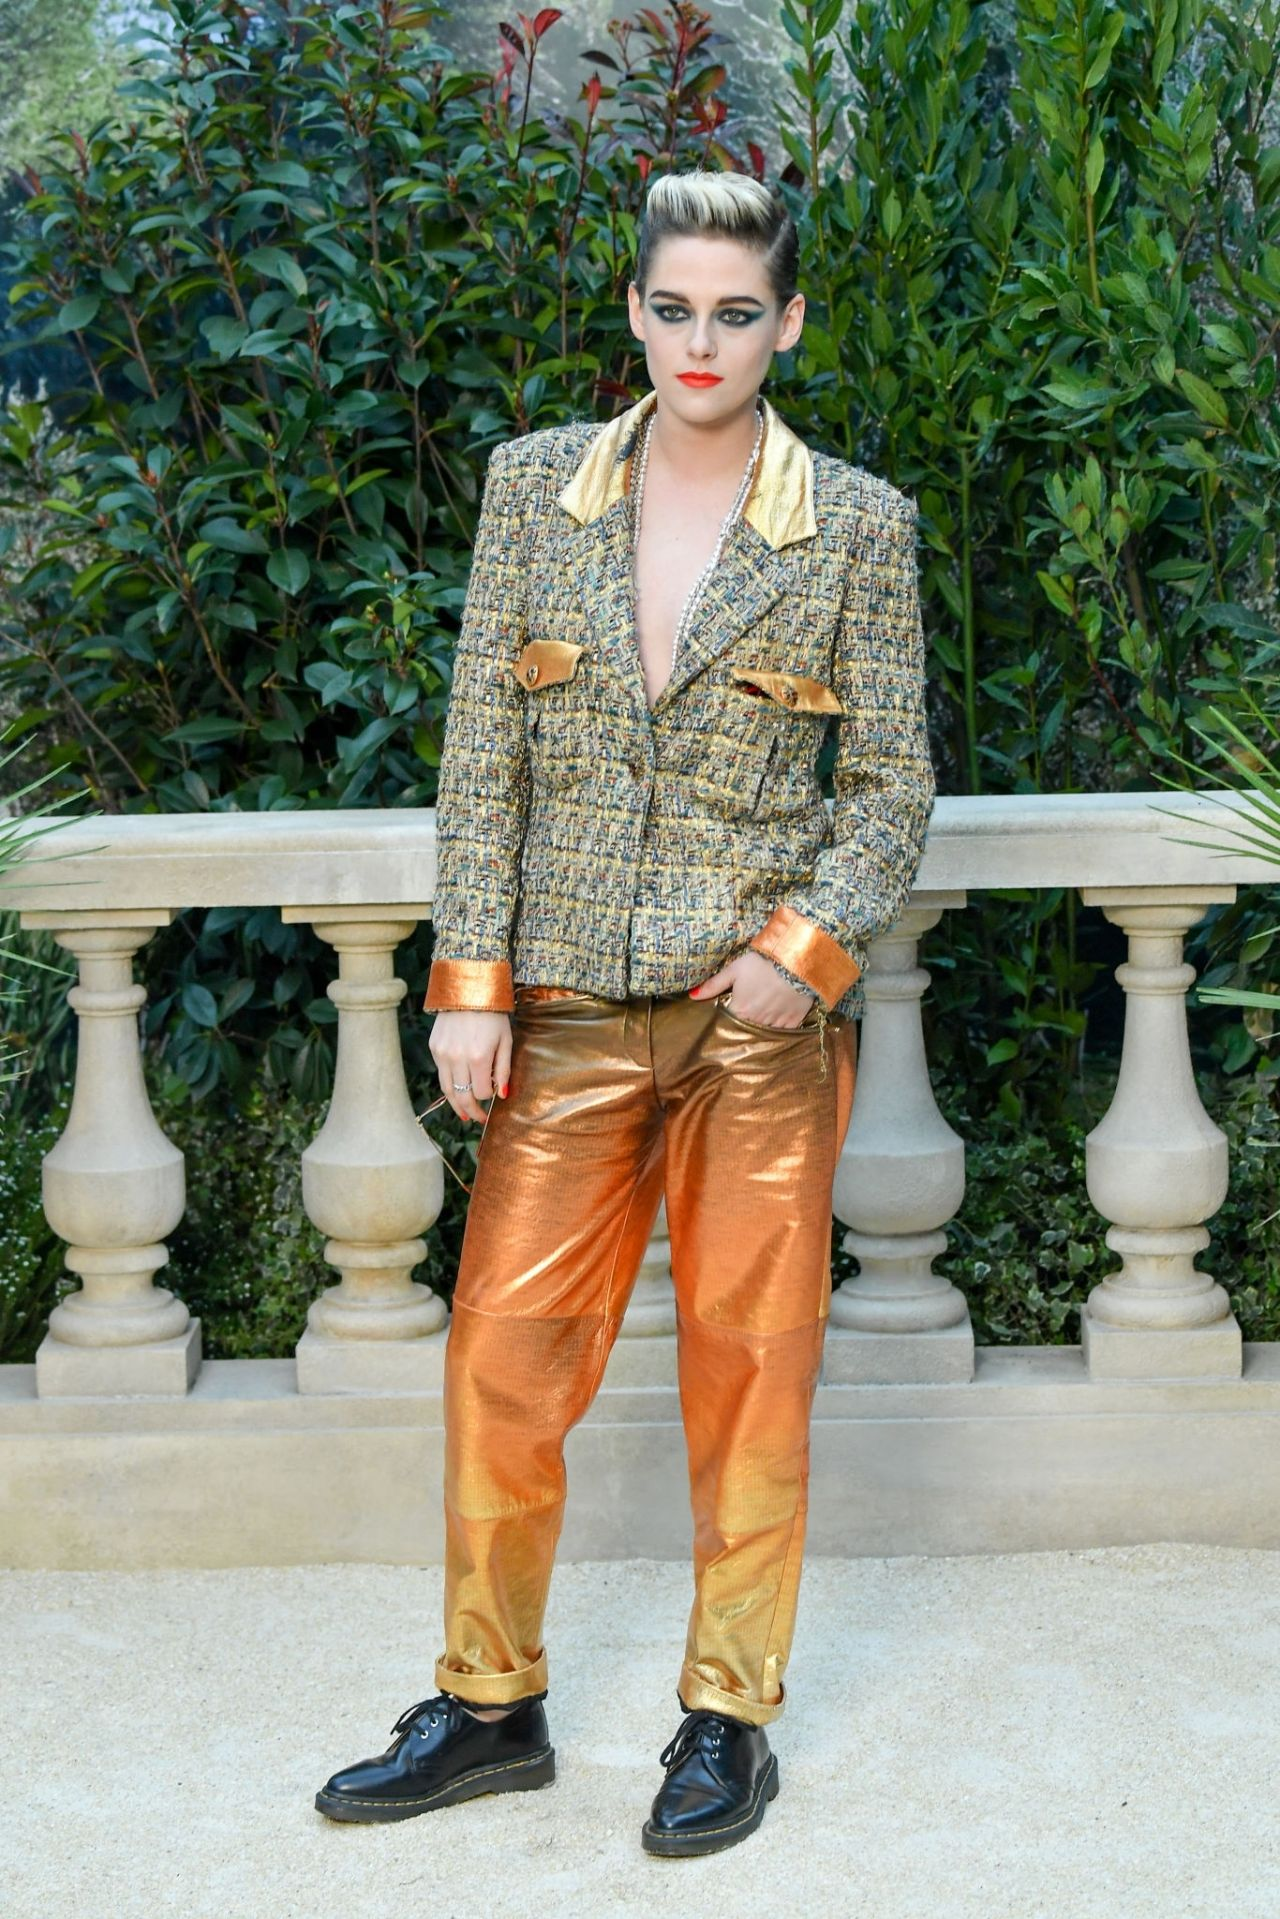 https://celebmafia.com/wp-content/uploads/2019/01/kristen-stewart-chanel-show-in-paris-01-22-2019-1.jpg